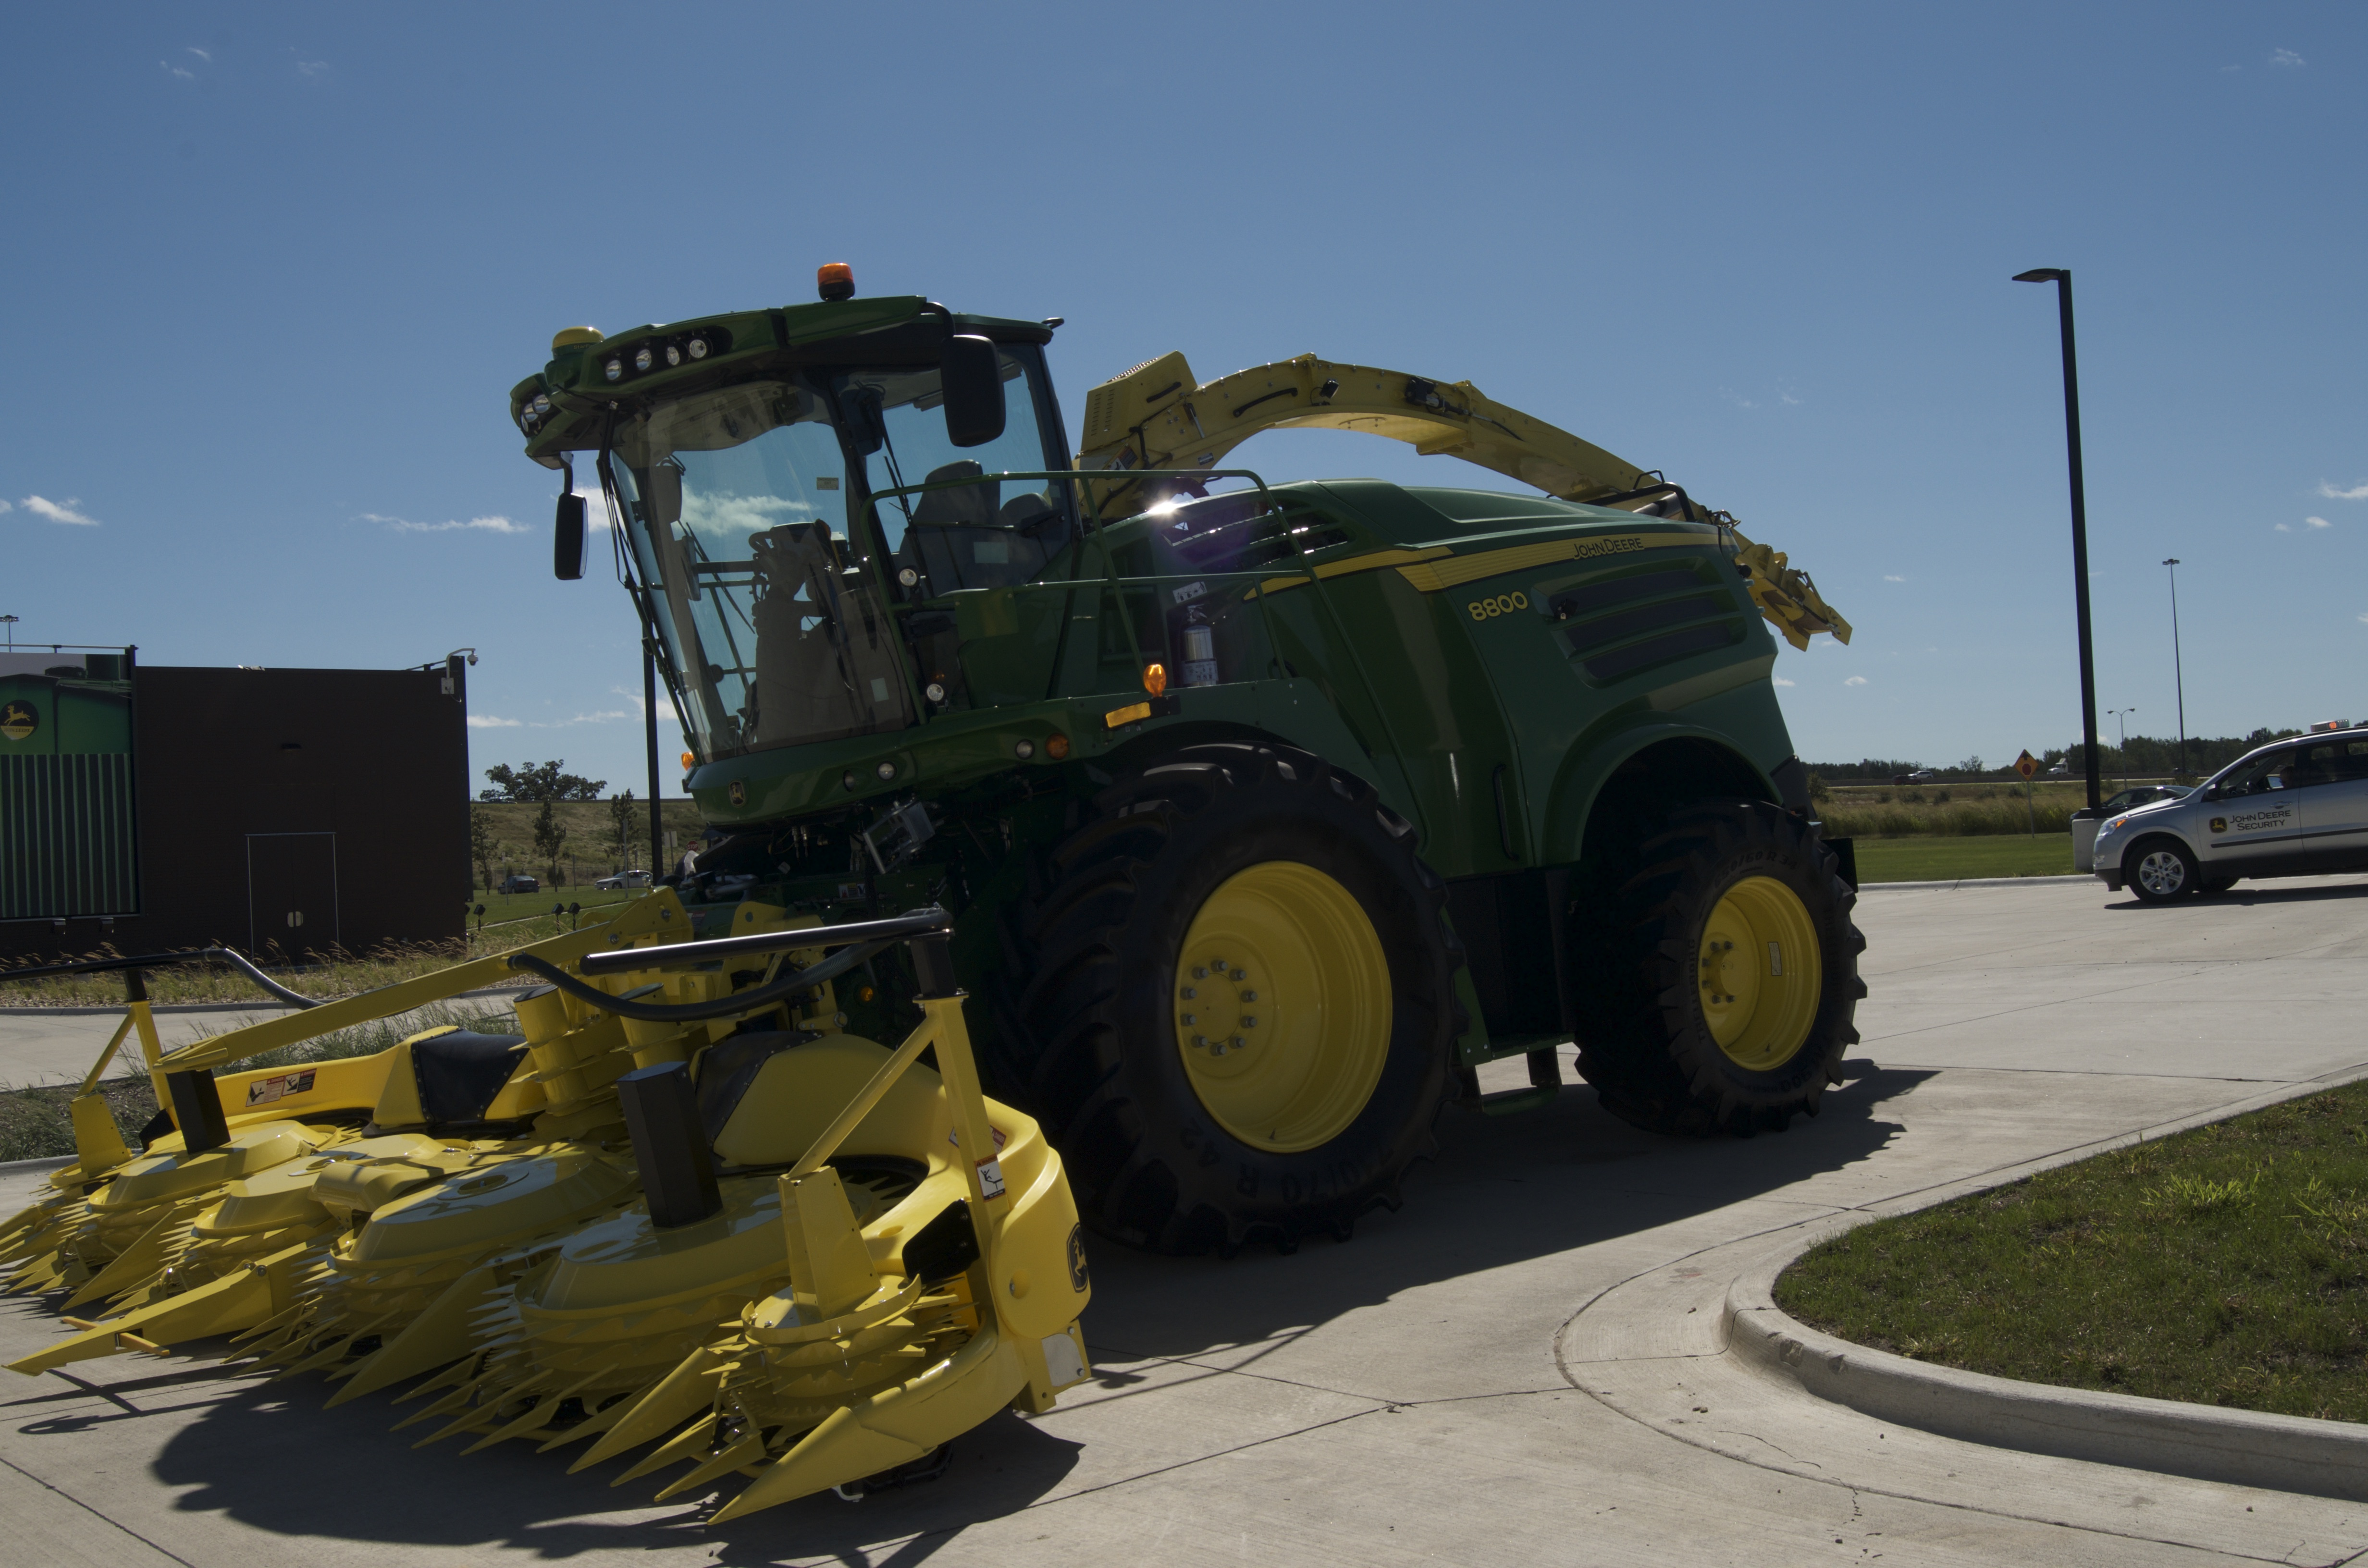 John Deere 8000 Series Self-Propelled Forage Harvester